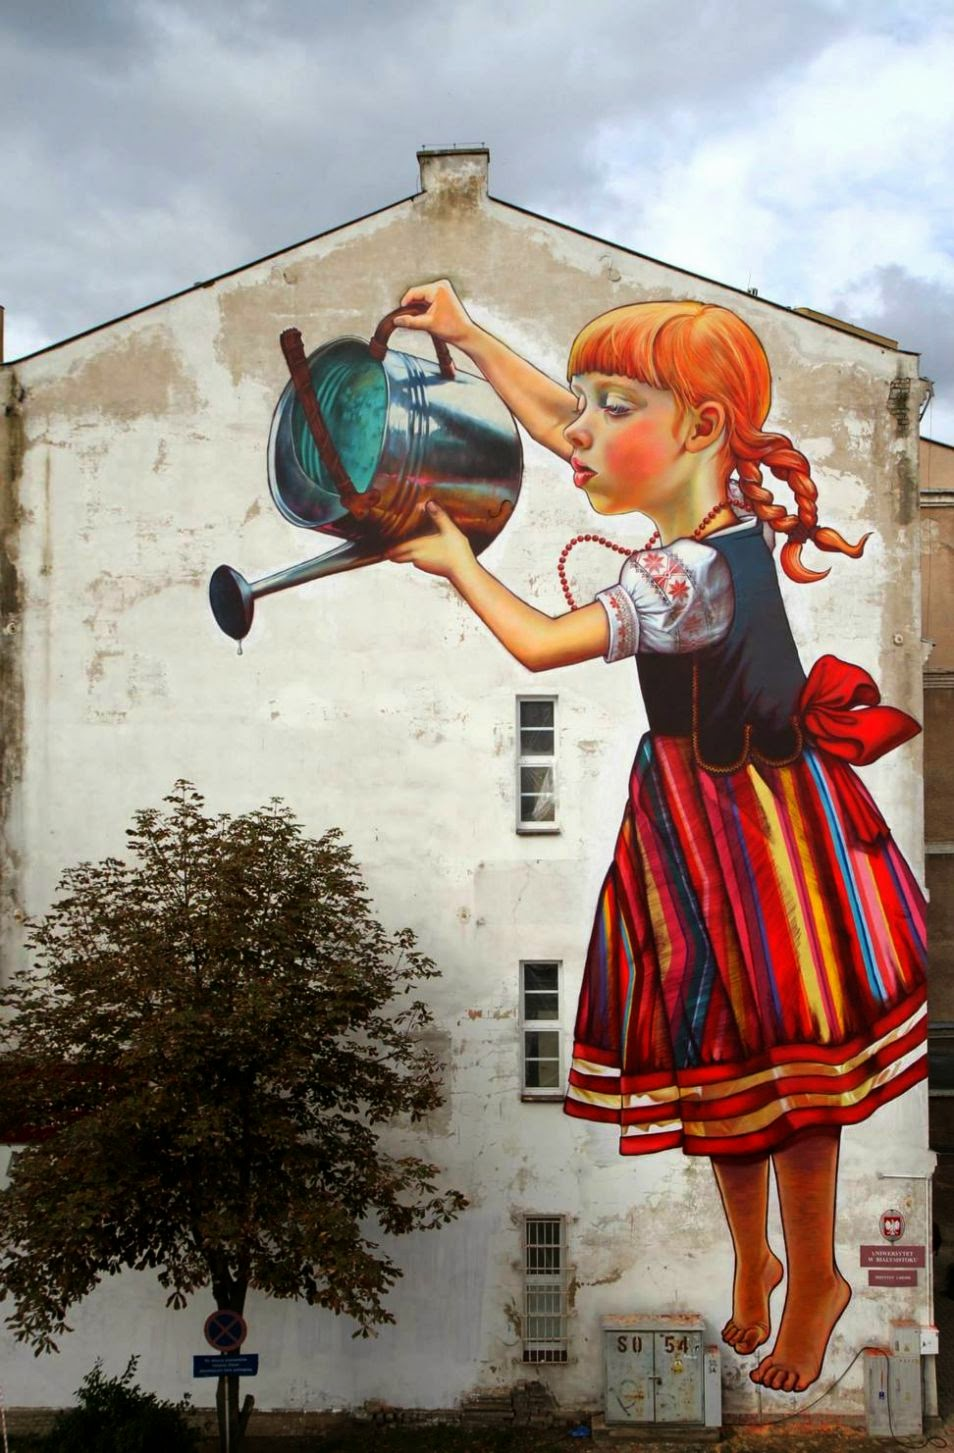 The Best Examples Of Street Art In 2012 And 2013 - Mural by Natalii Rak, Białystok, Poland